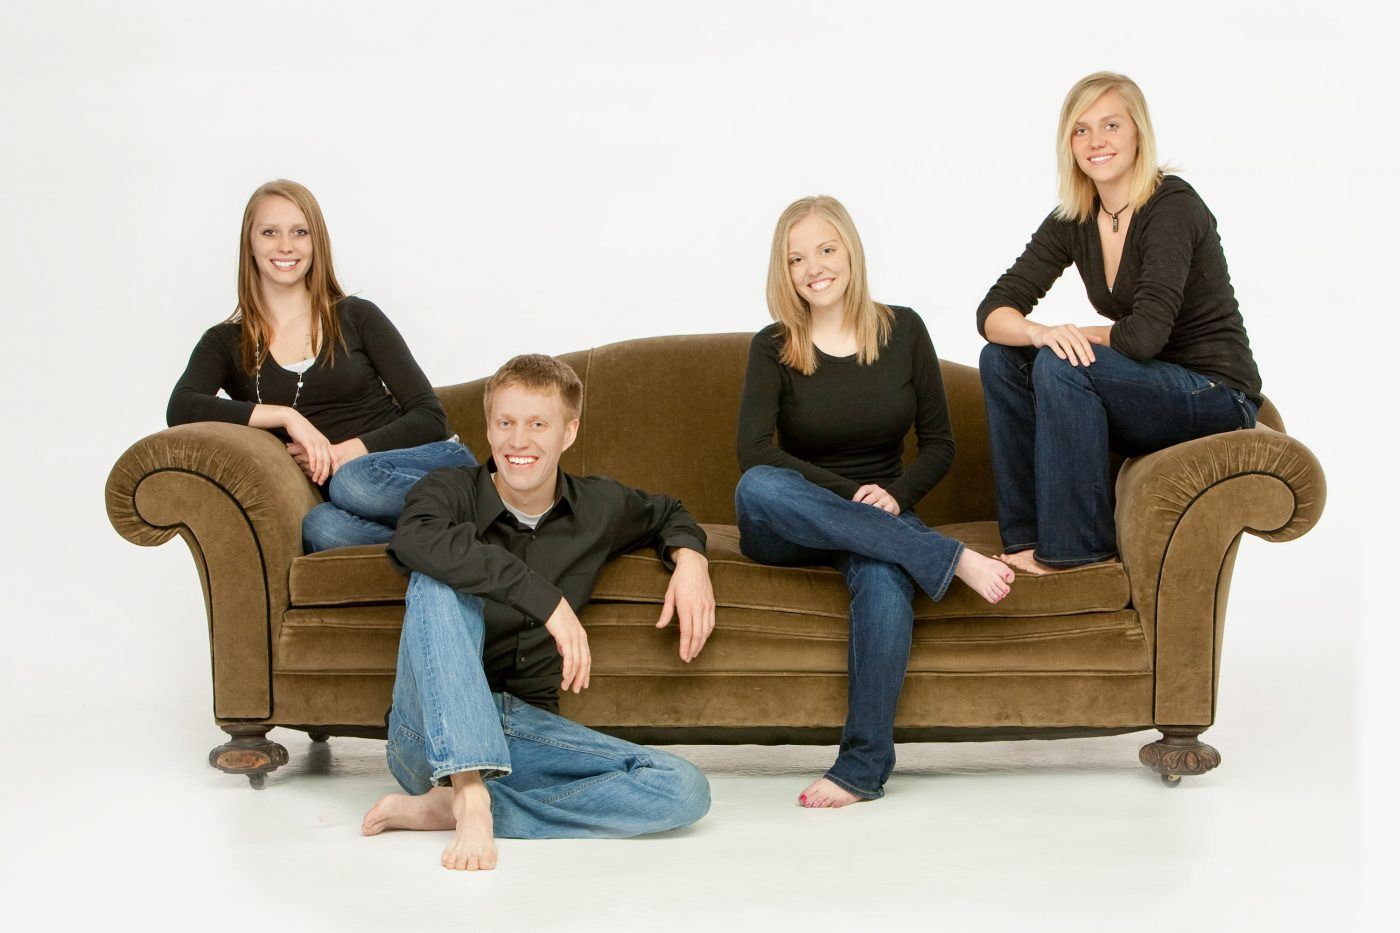 4 sibs on a couch